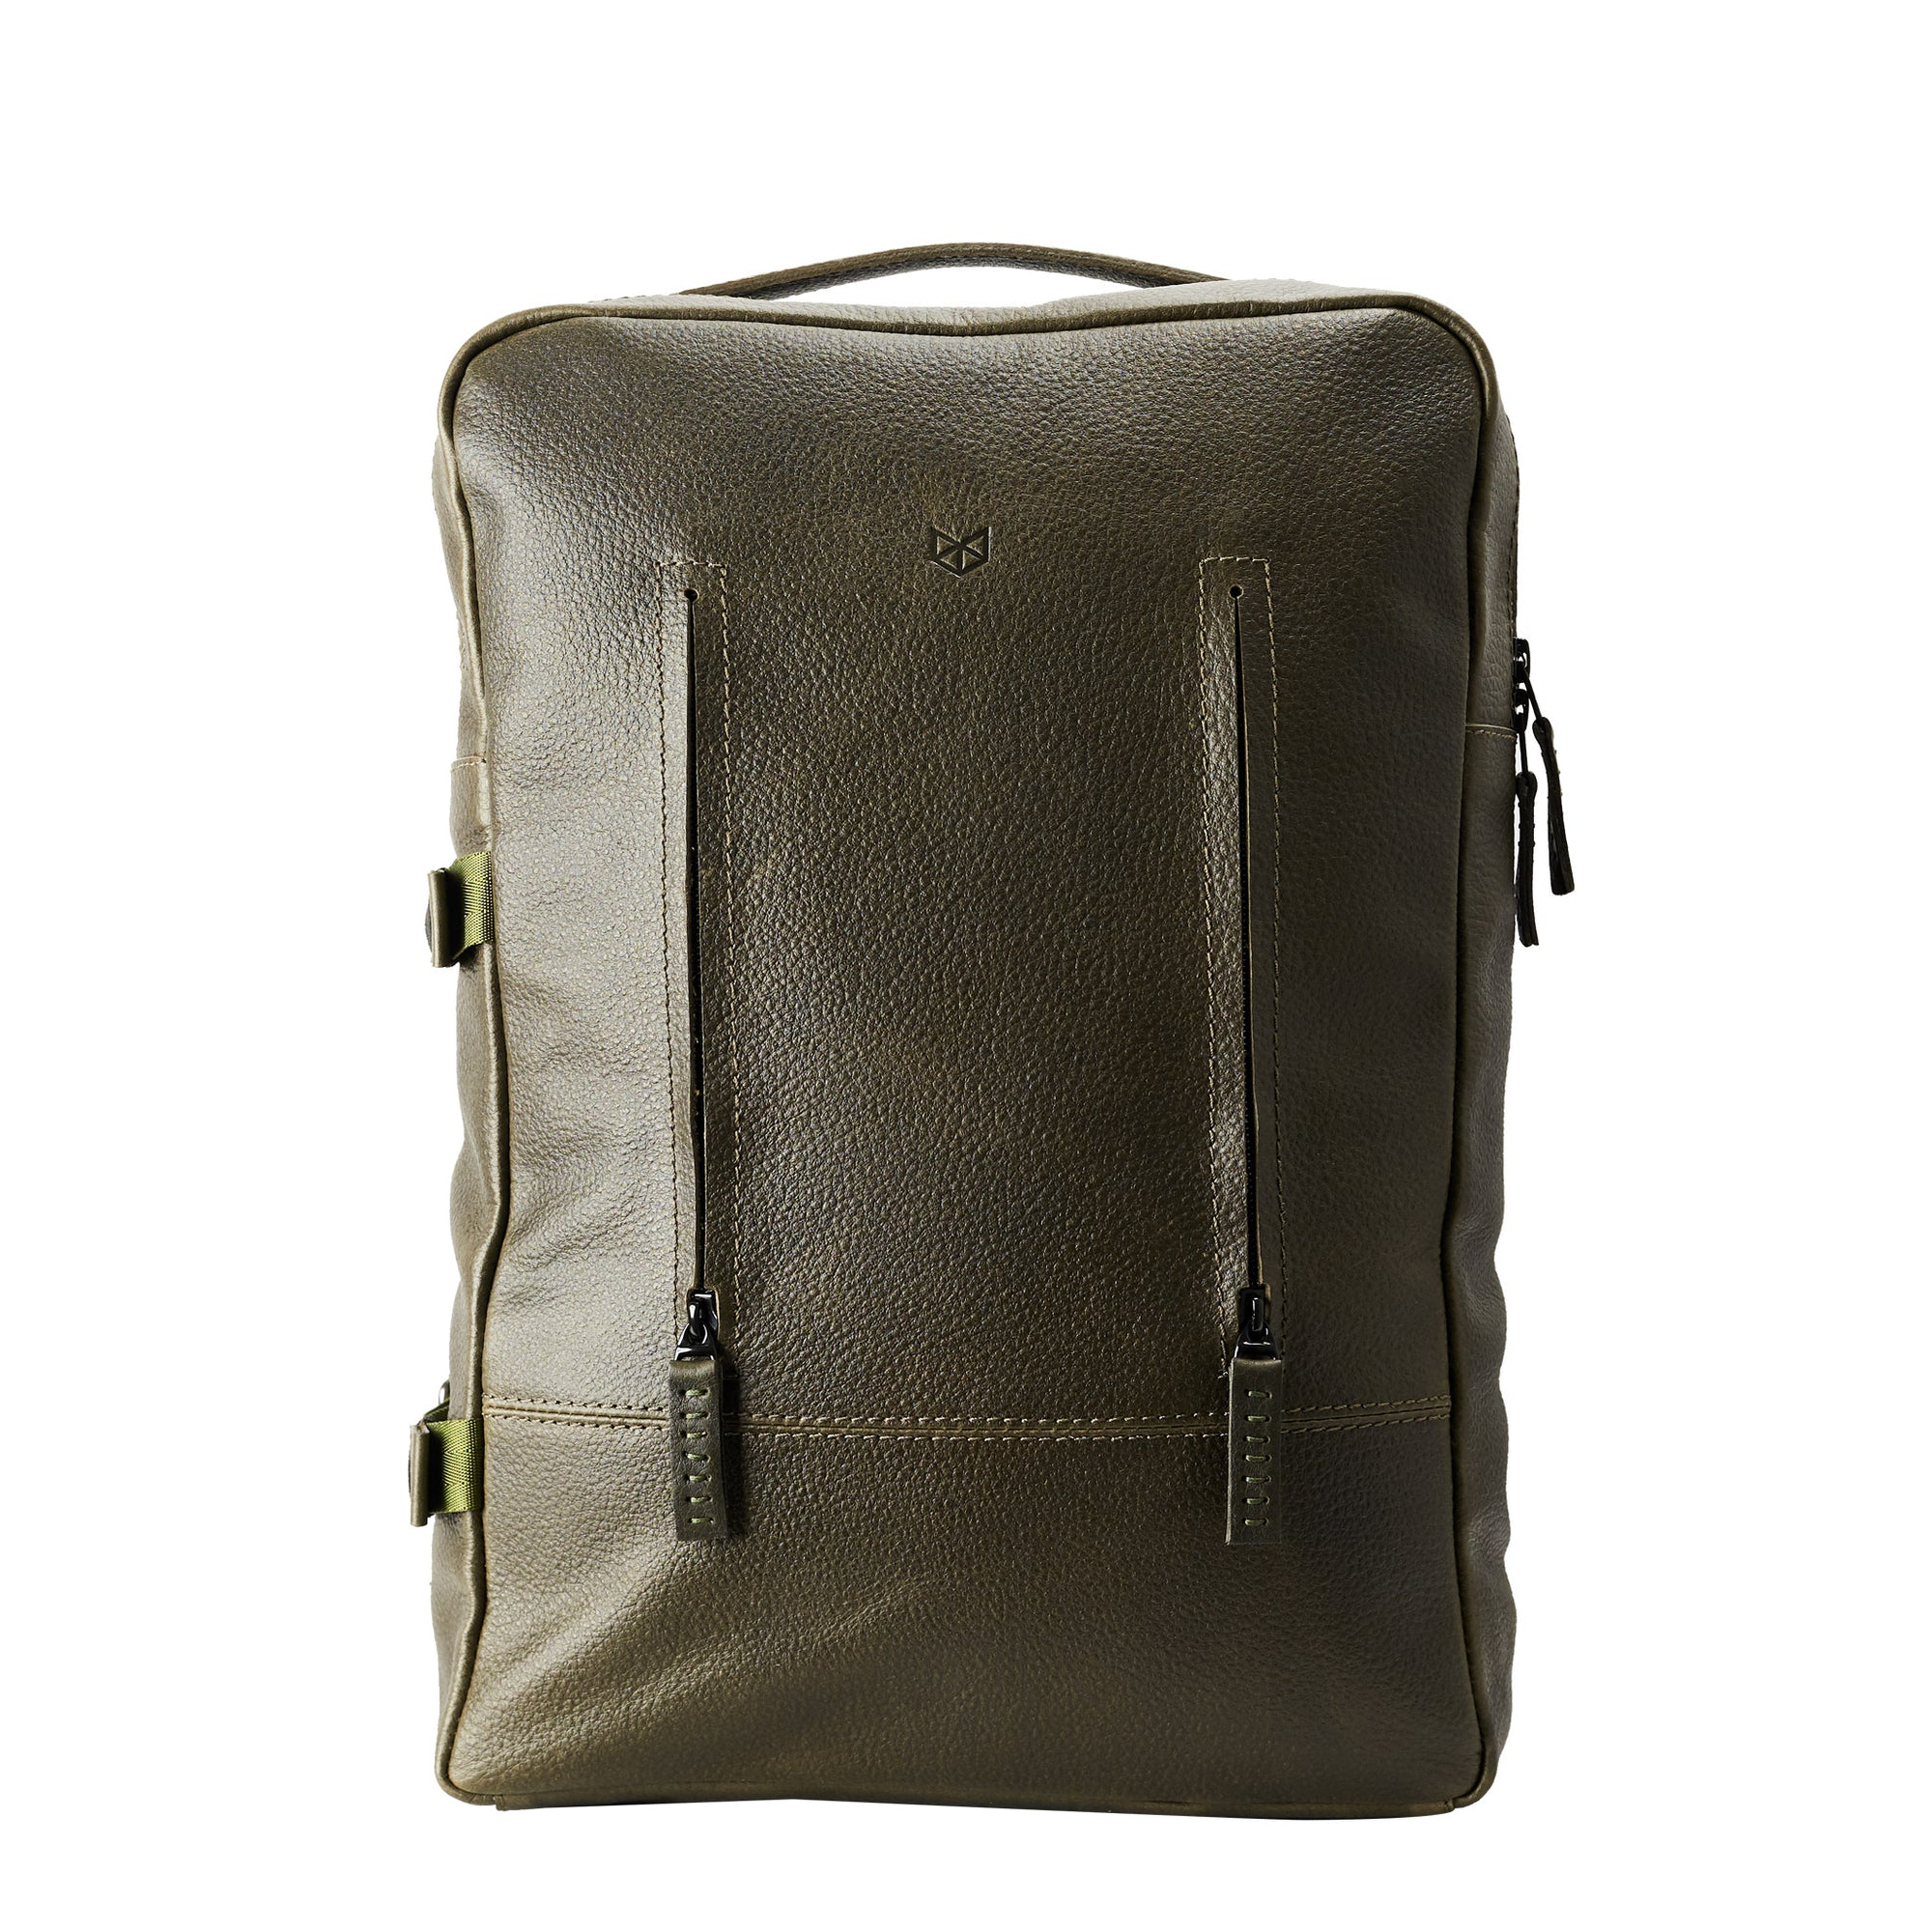 Green Leather Backpack for men. Designer unique rucksack